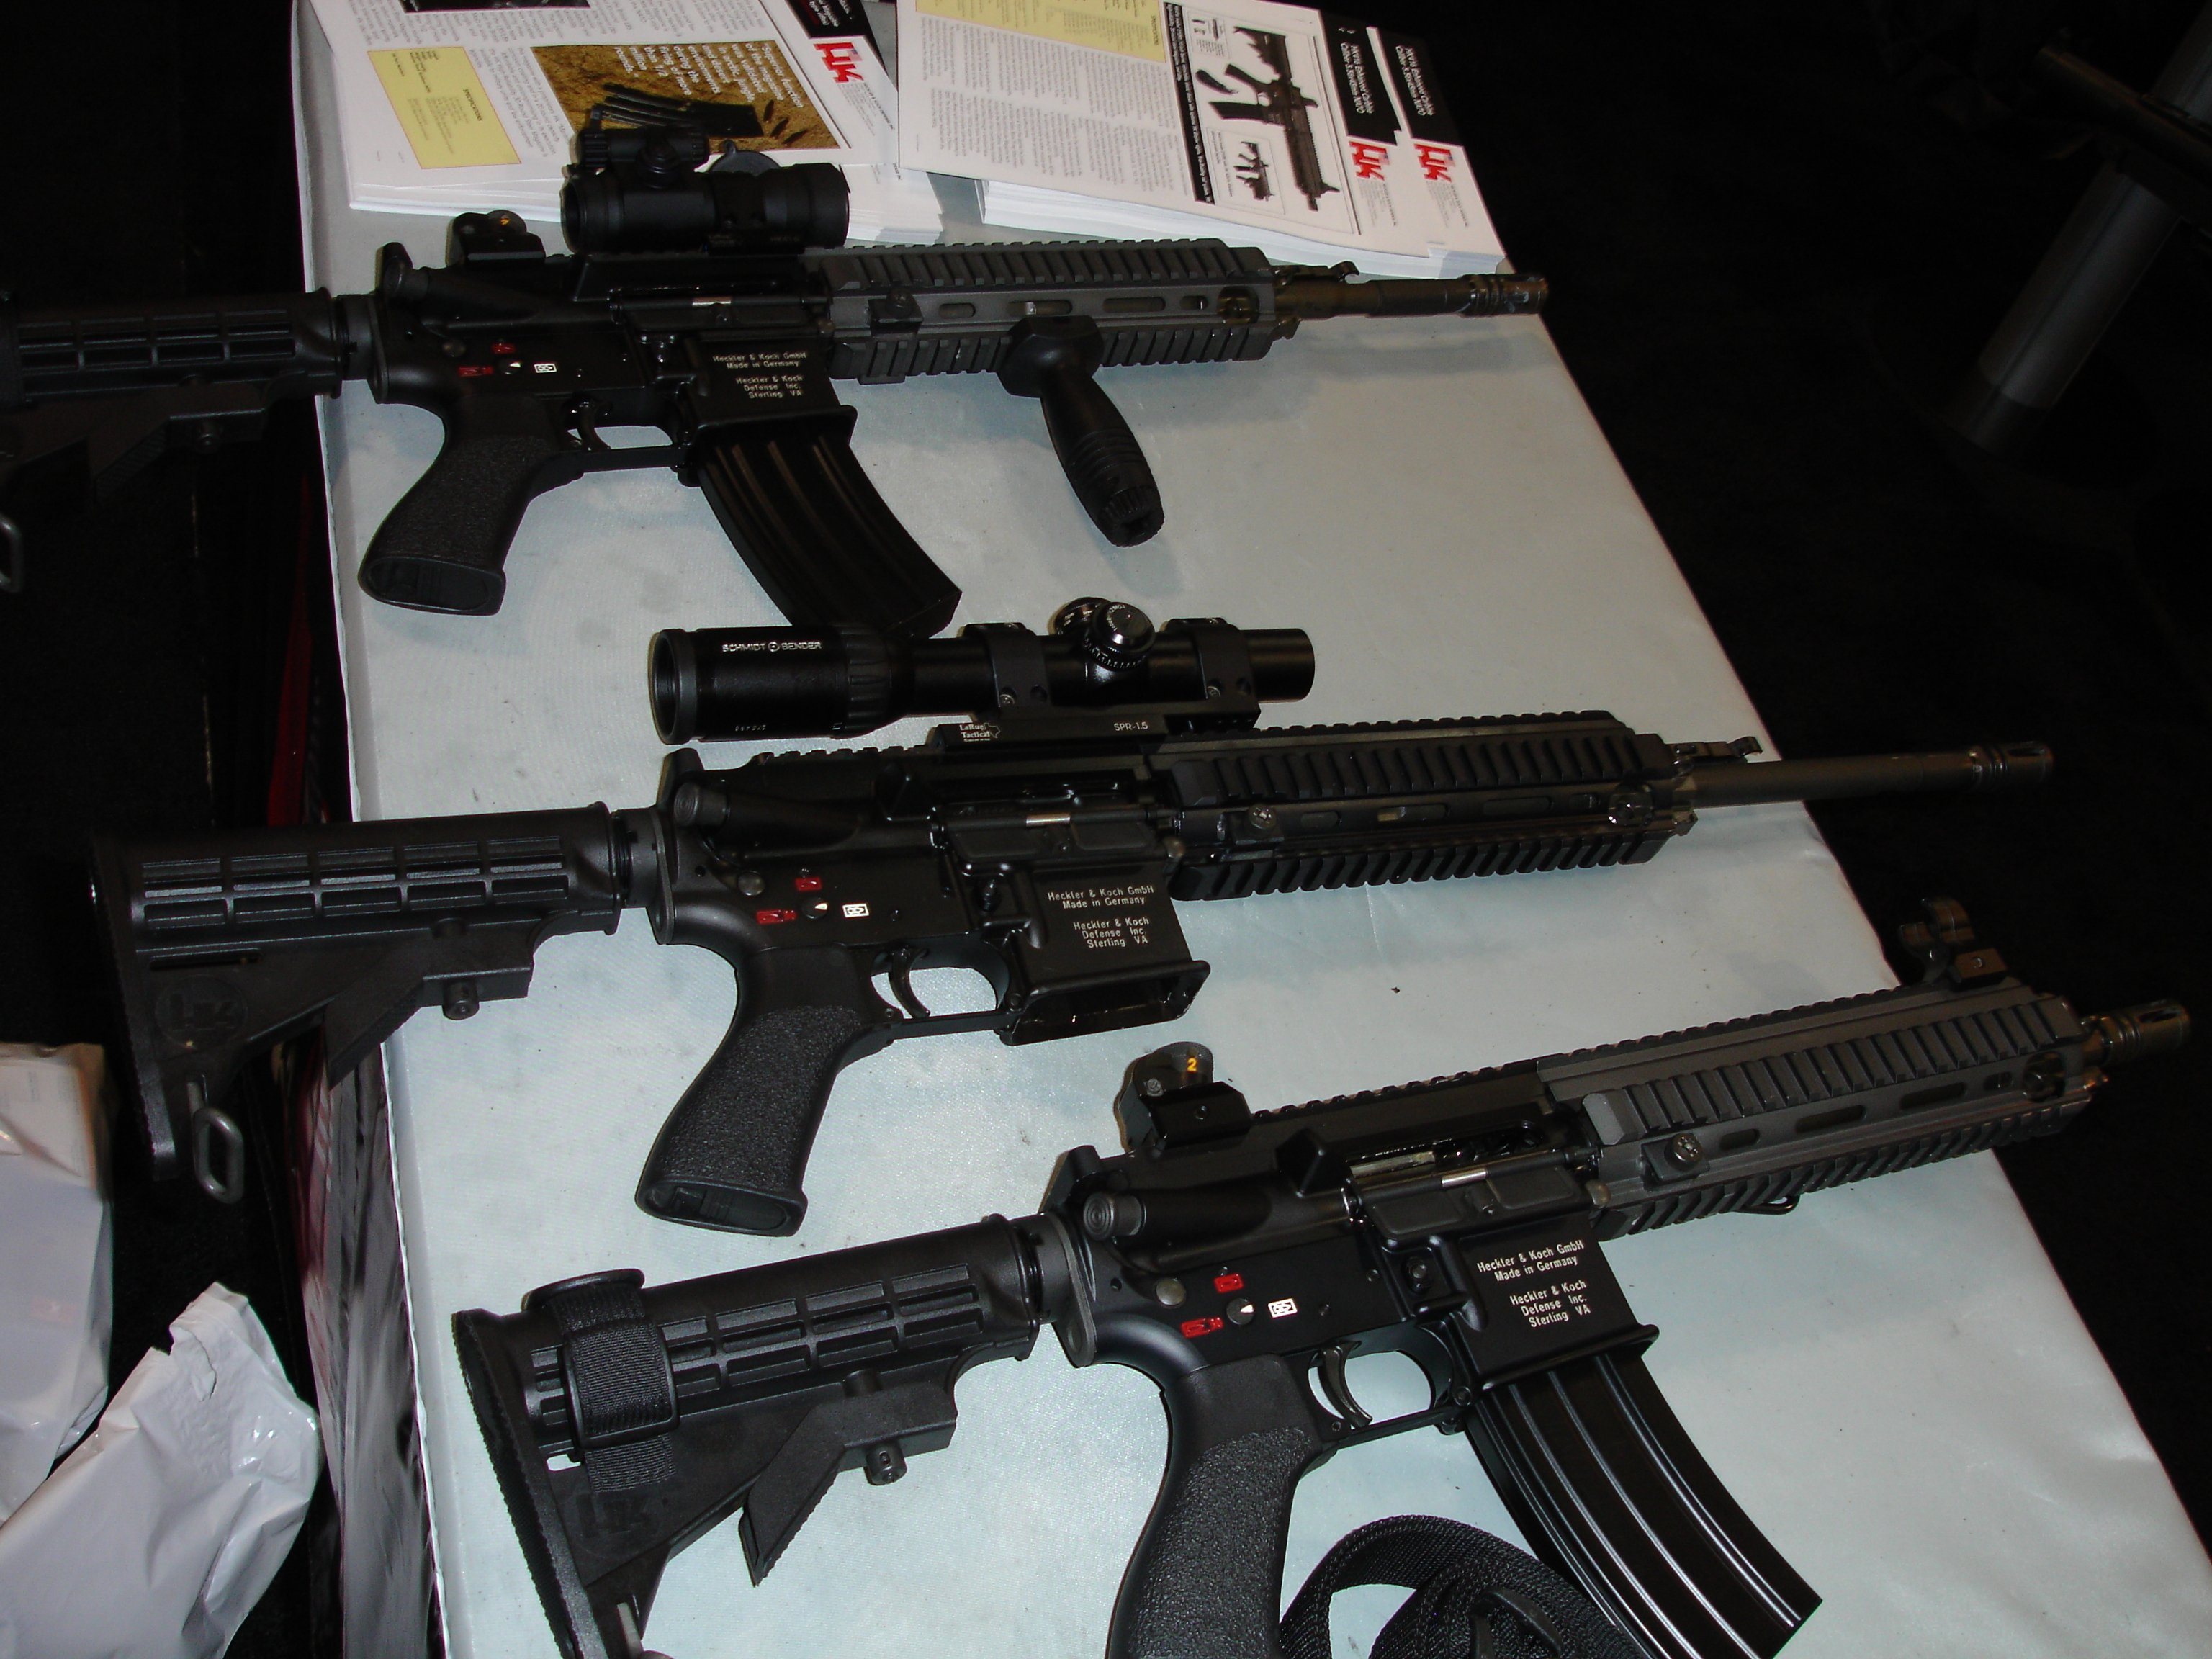 HK416 4 <!  :en  >HK416 Carbine/SBR Confiscation Program Unleashed on U.S. Army AWG<!  :  >